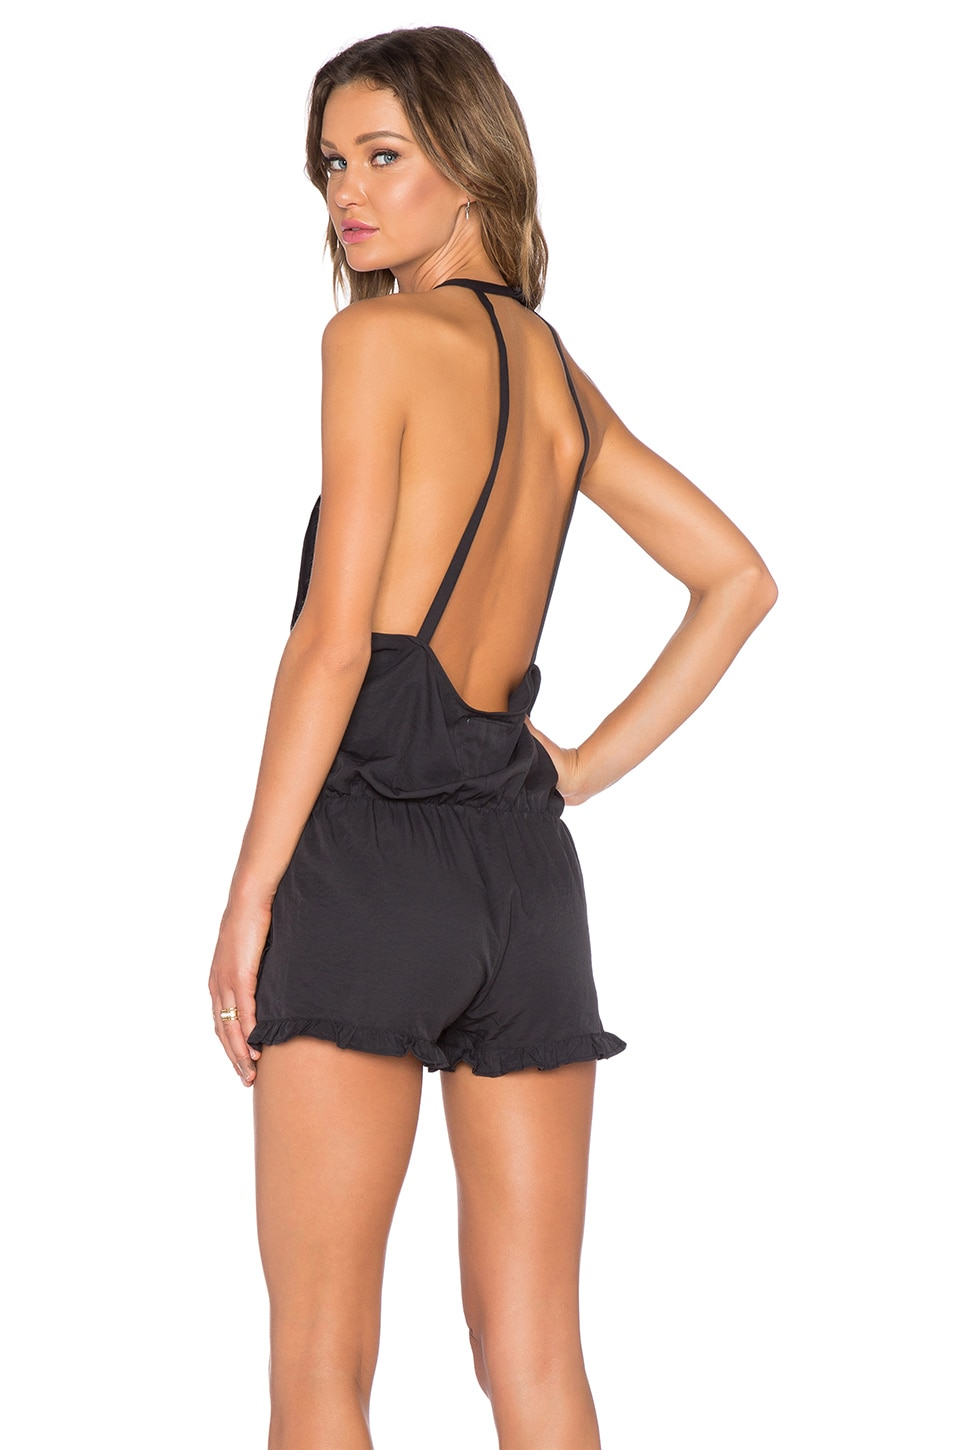 Revolve Clothing Coupon Code 20 : Mega Deals and Coupons